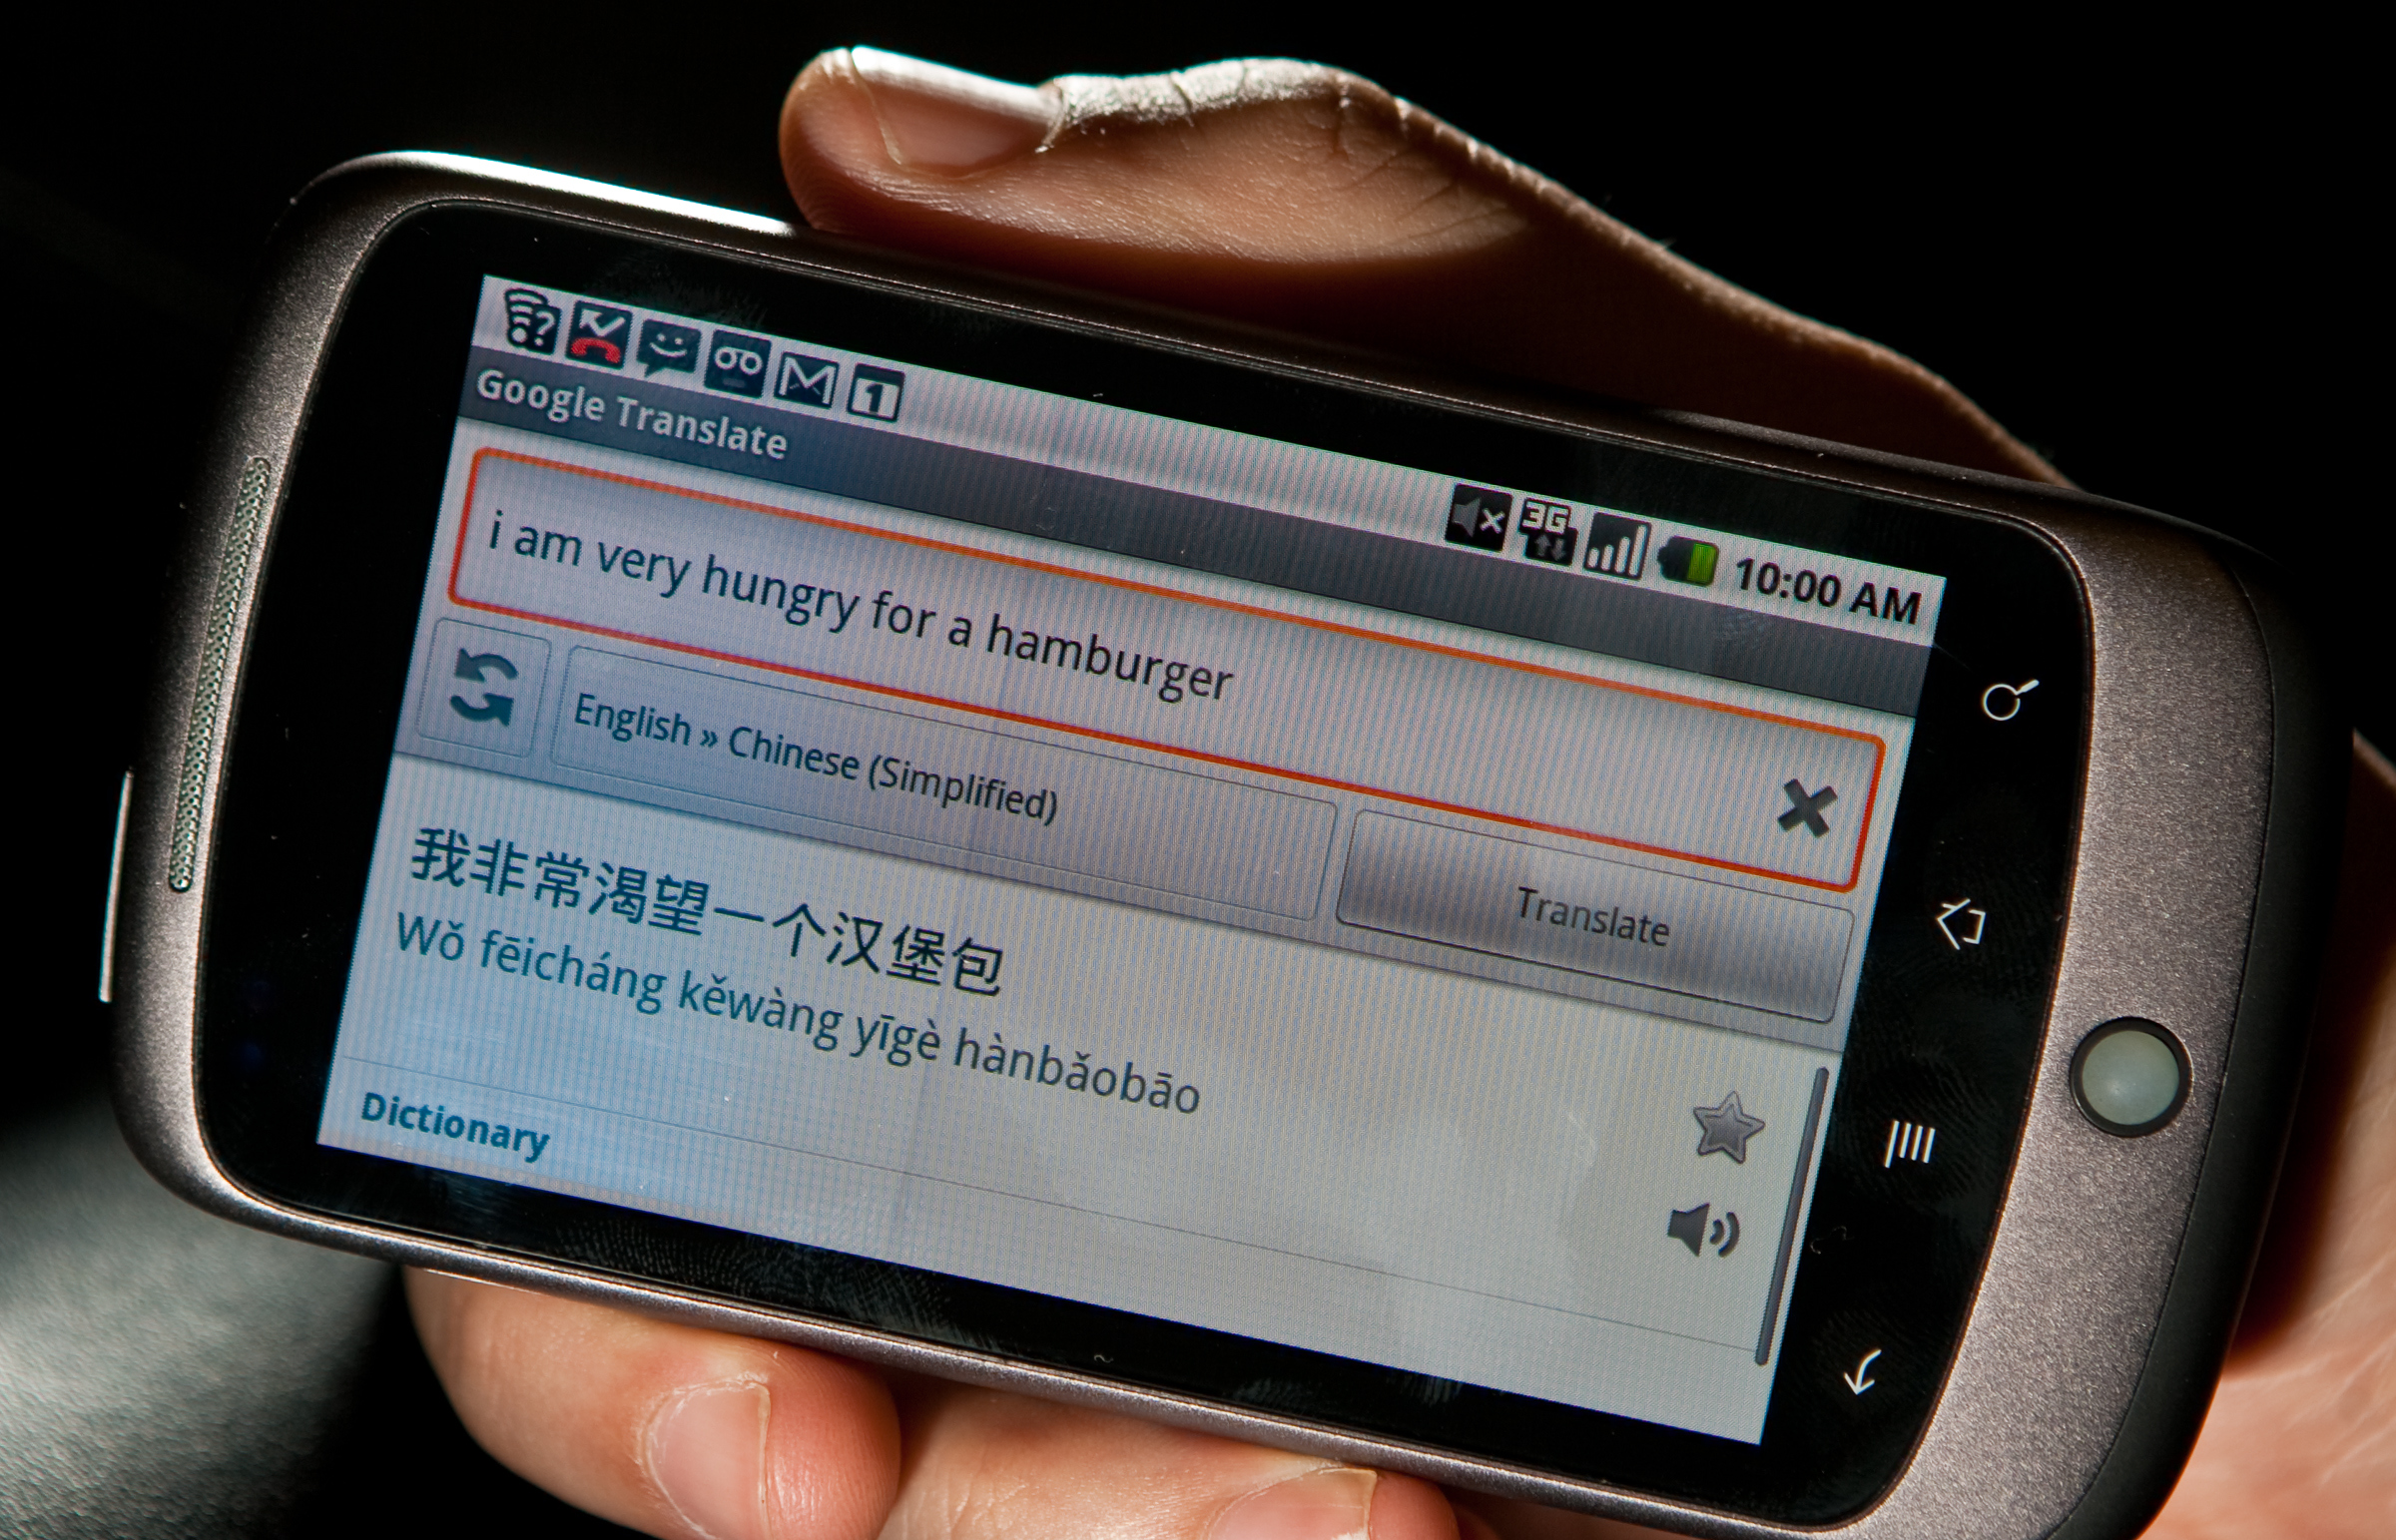 Google's Nexus One phone displays the Google Translate application, which allows users to get trans